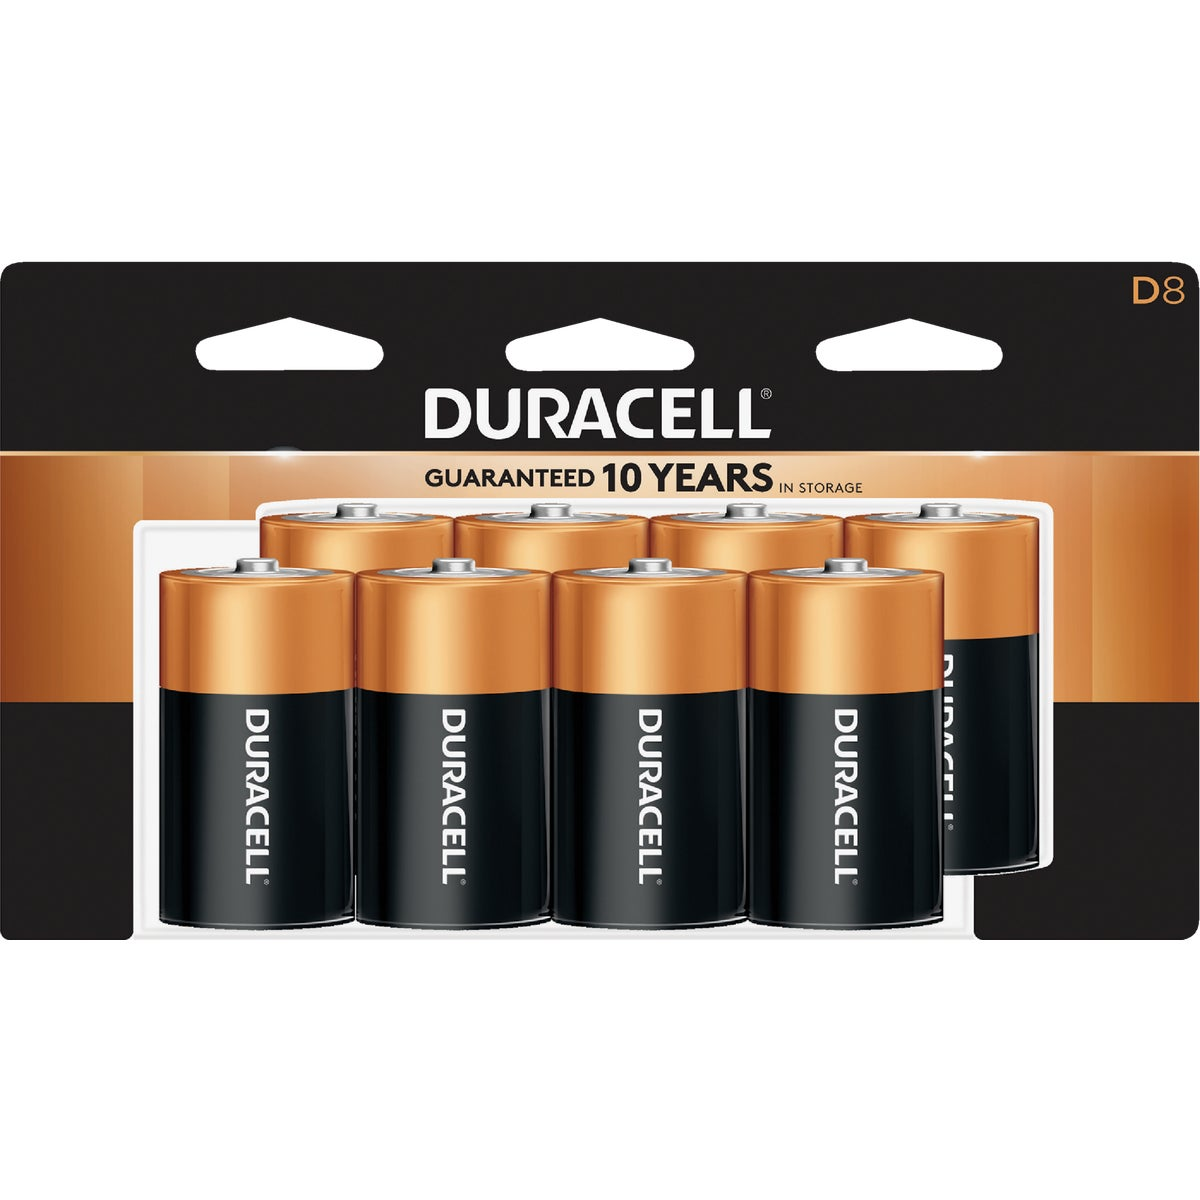 8PK D BATTERY - MN13R8DWZ17 by P & G  Duracell